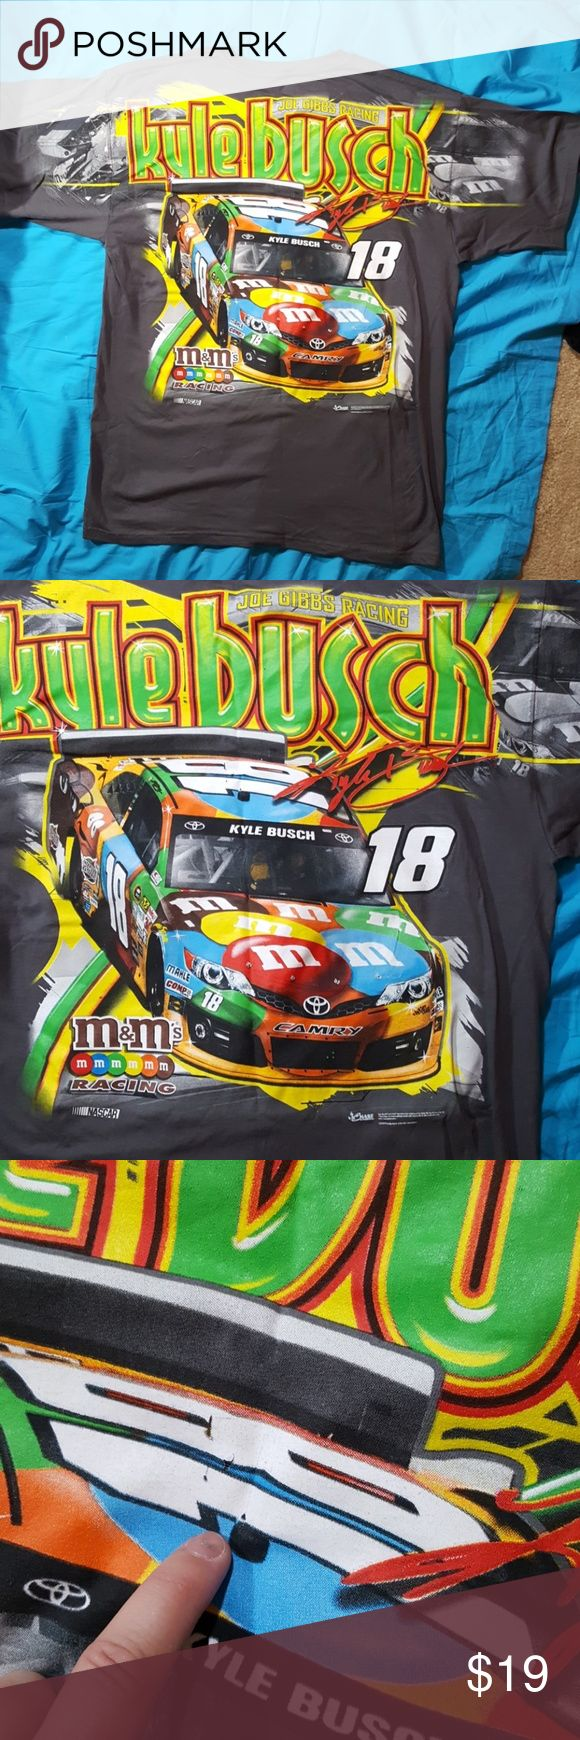 Xl kyle busch joe gibbs racing NASCAR M&M t-shirt Grey men's extra large shirt the brand is Chase Authentics the official Trackside apparel of NASCAR. It's a hundred percent cotton to minor imperfections indicated in photos otherwise new without technician excellent graphic clean and crisp fabric. nascar Shirts Tees - Short Sleeve